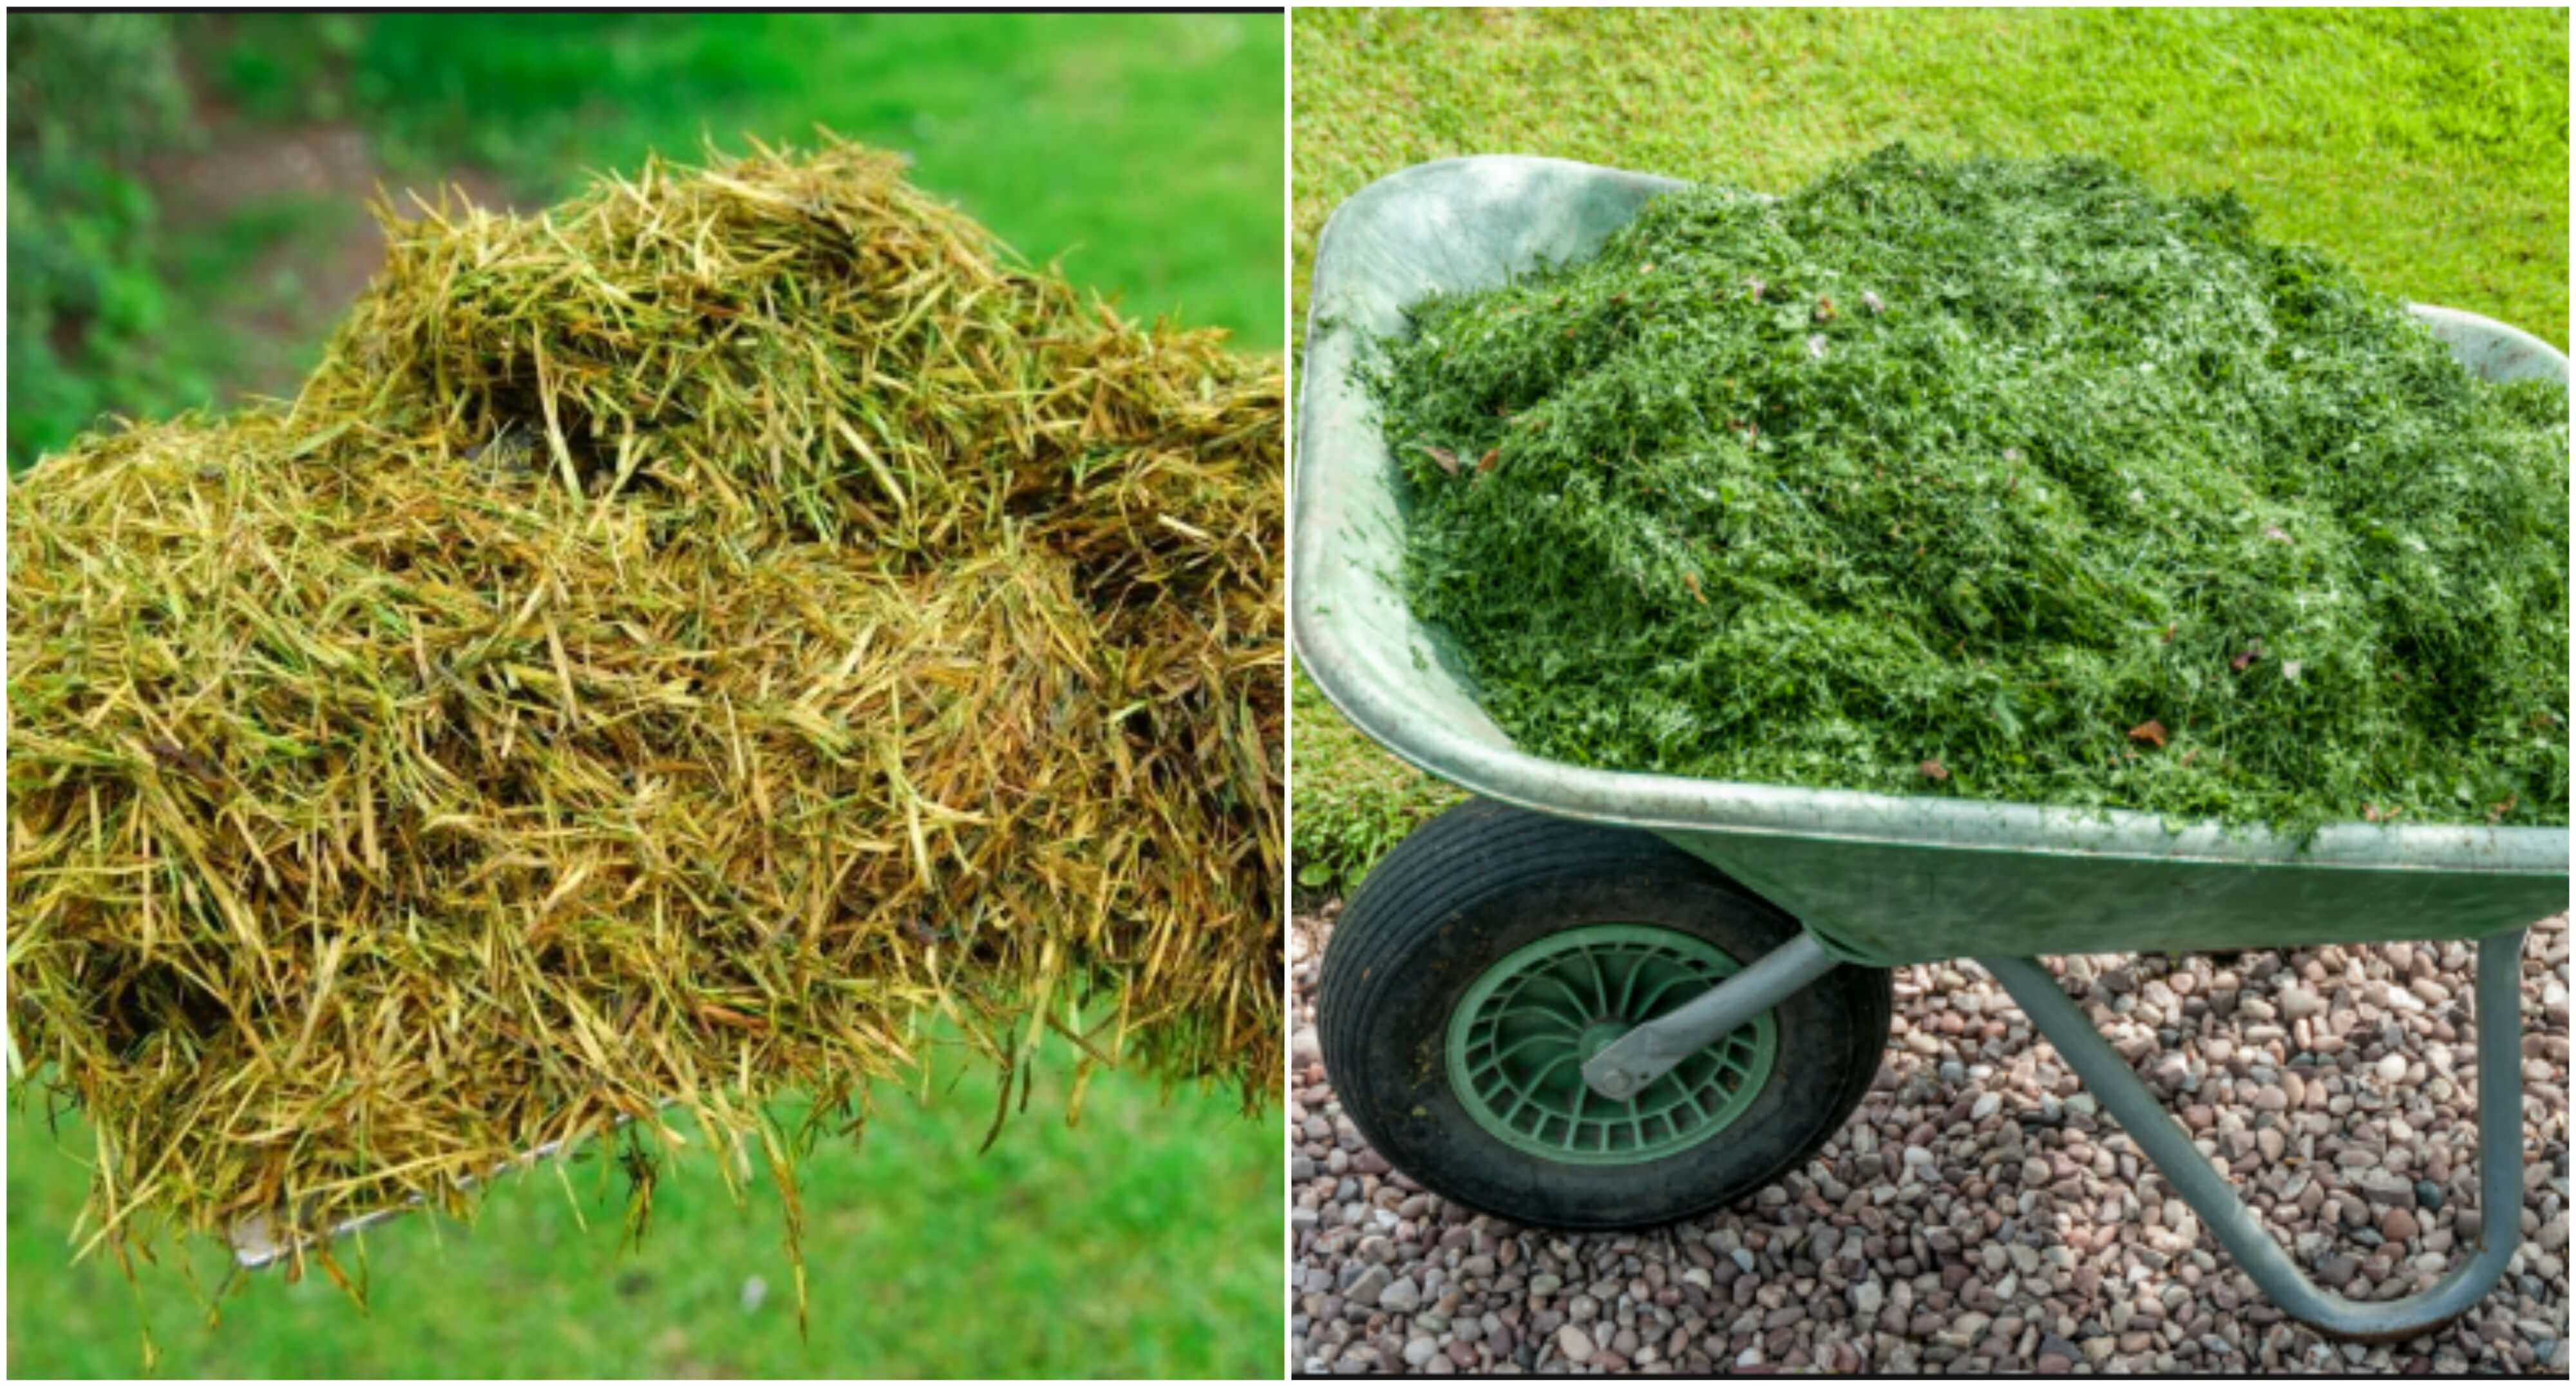 Grass can also be used as a very nutrient-rich mulch